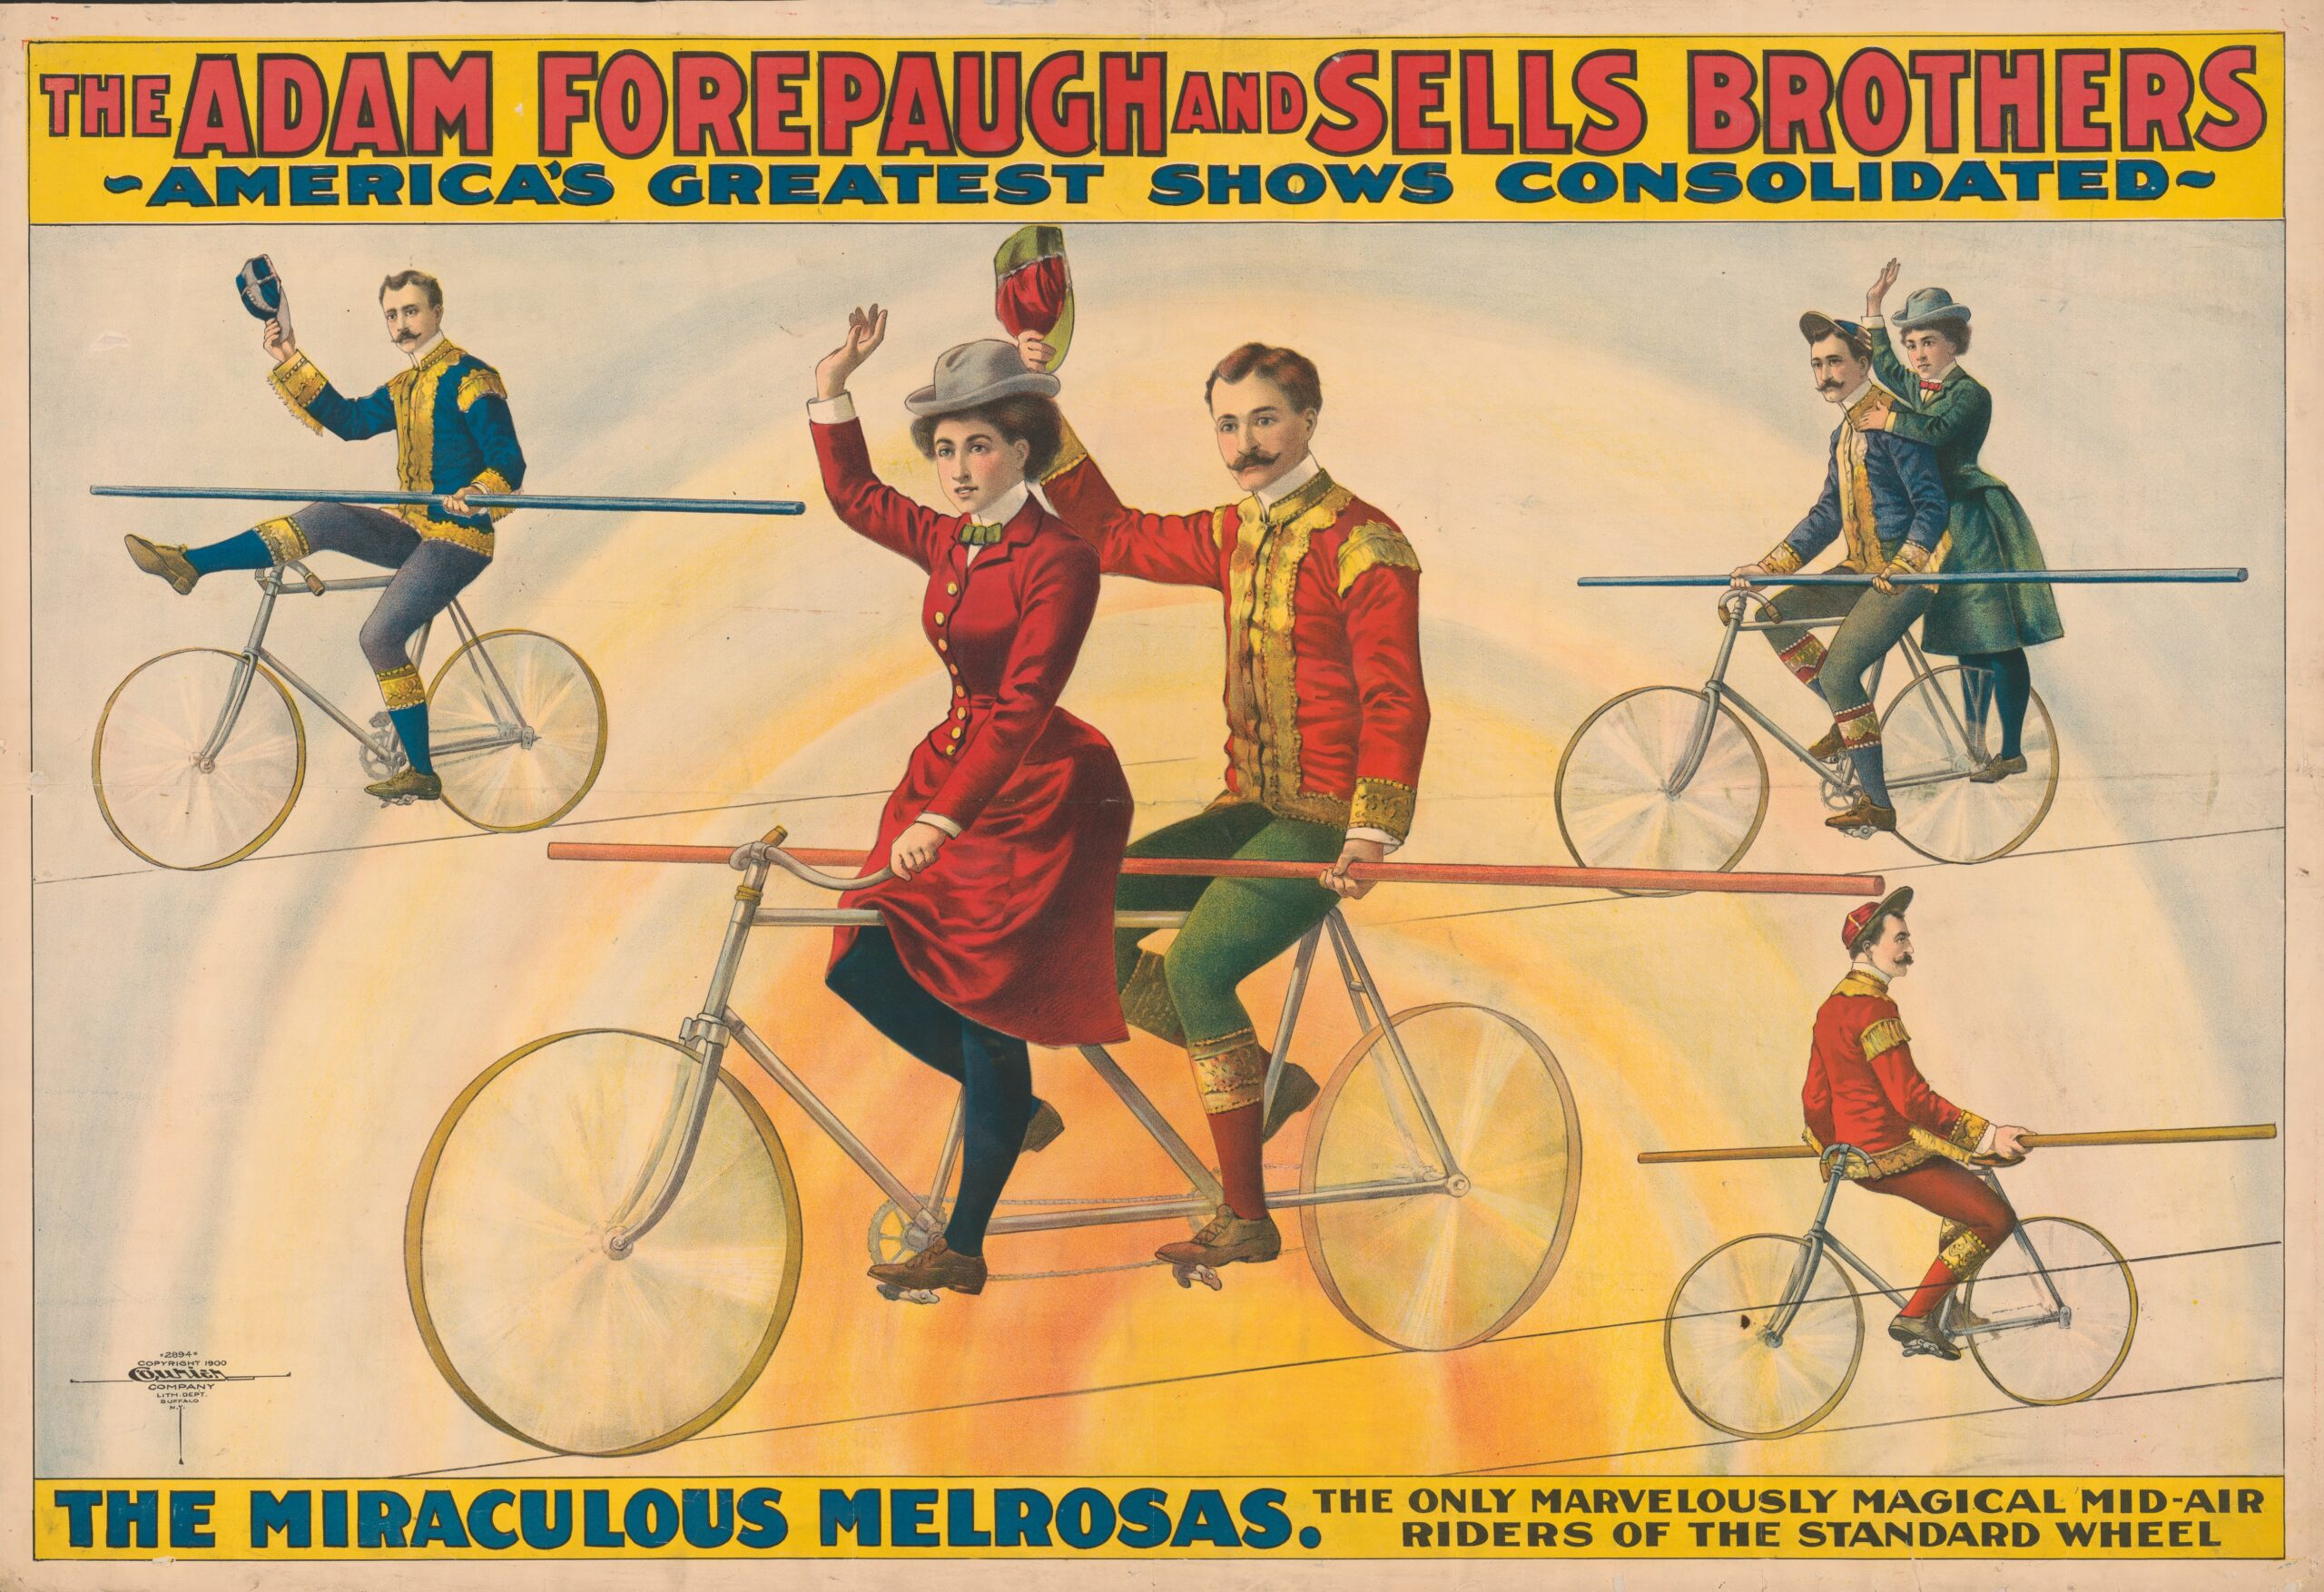 The Adam Forepaugh and Sells Brothers, America's greatest shows consolidated--The miraculous Melrosas. Chromolithograph by Courier Litho. Co., c1900. From the Circus Posters Collection. Library of Congress Prints & Photographs Division.